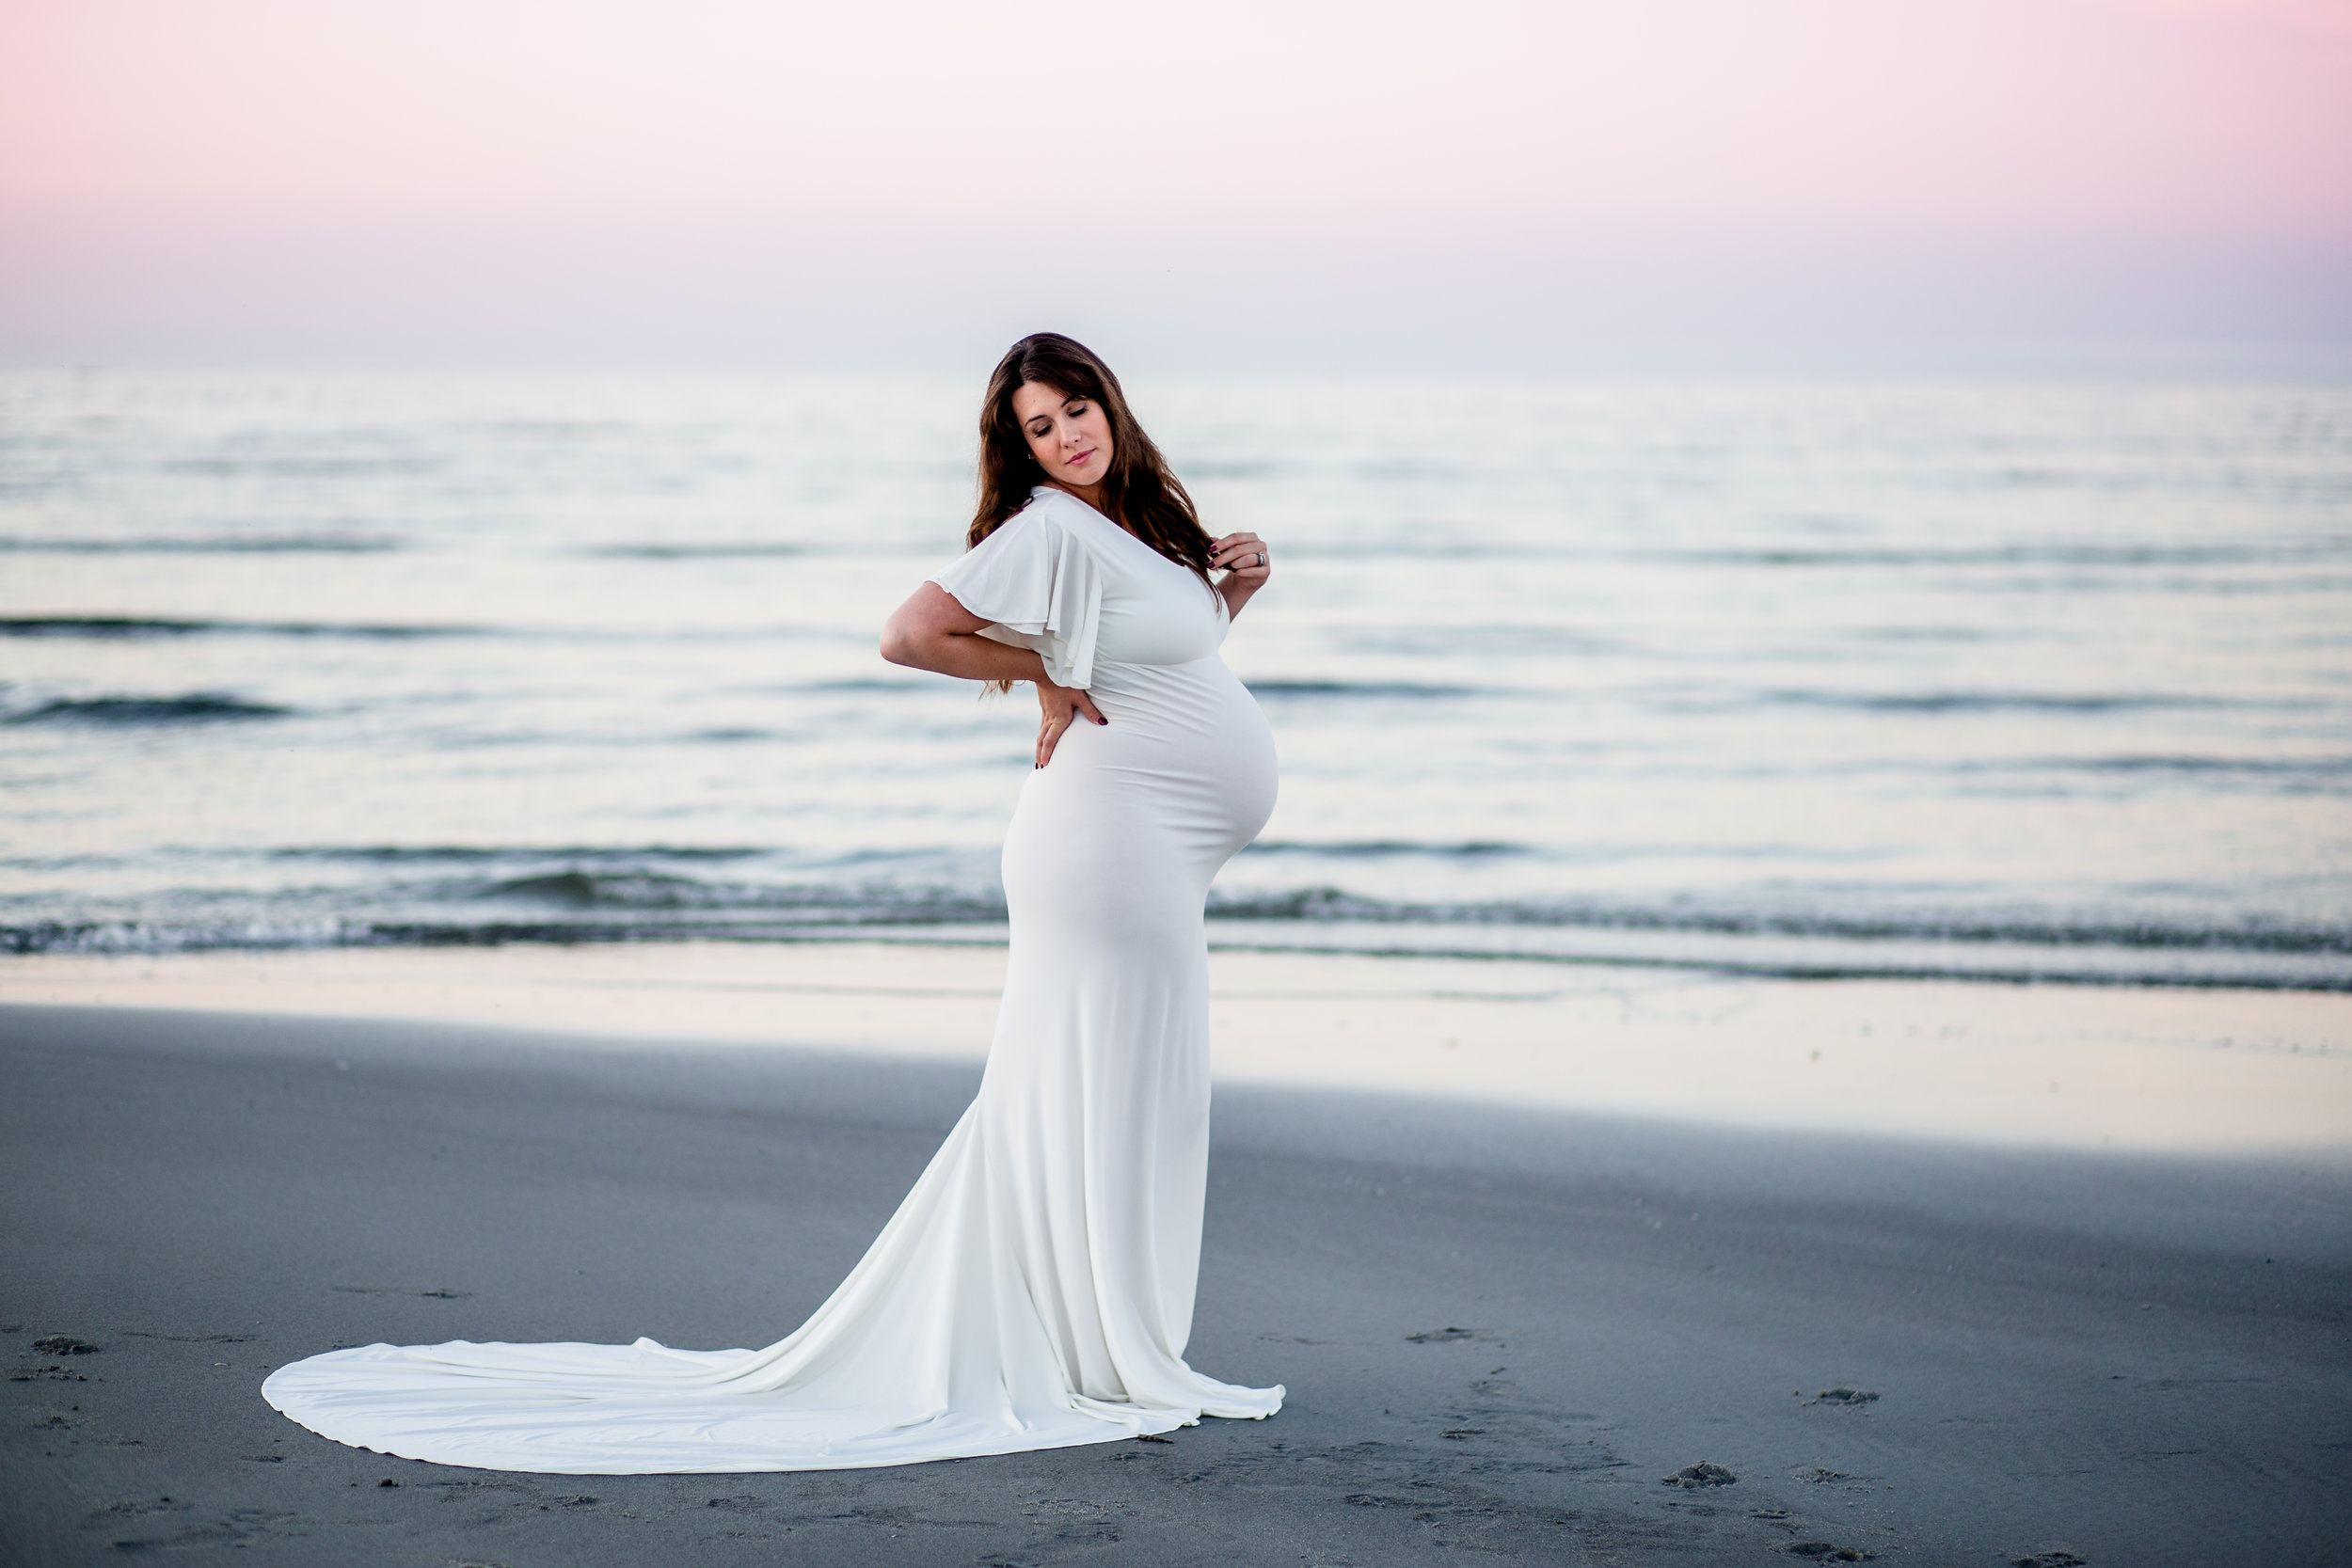 beach maternity session with colorful sky and designer dress